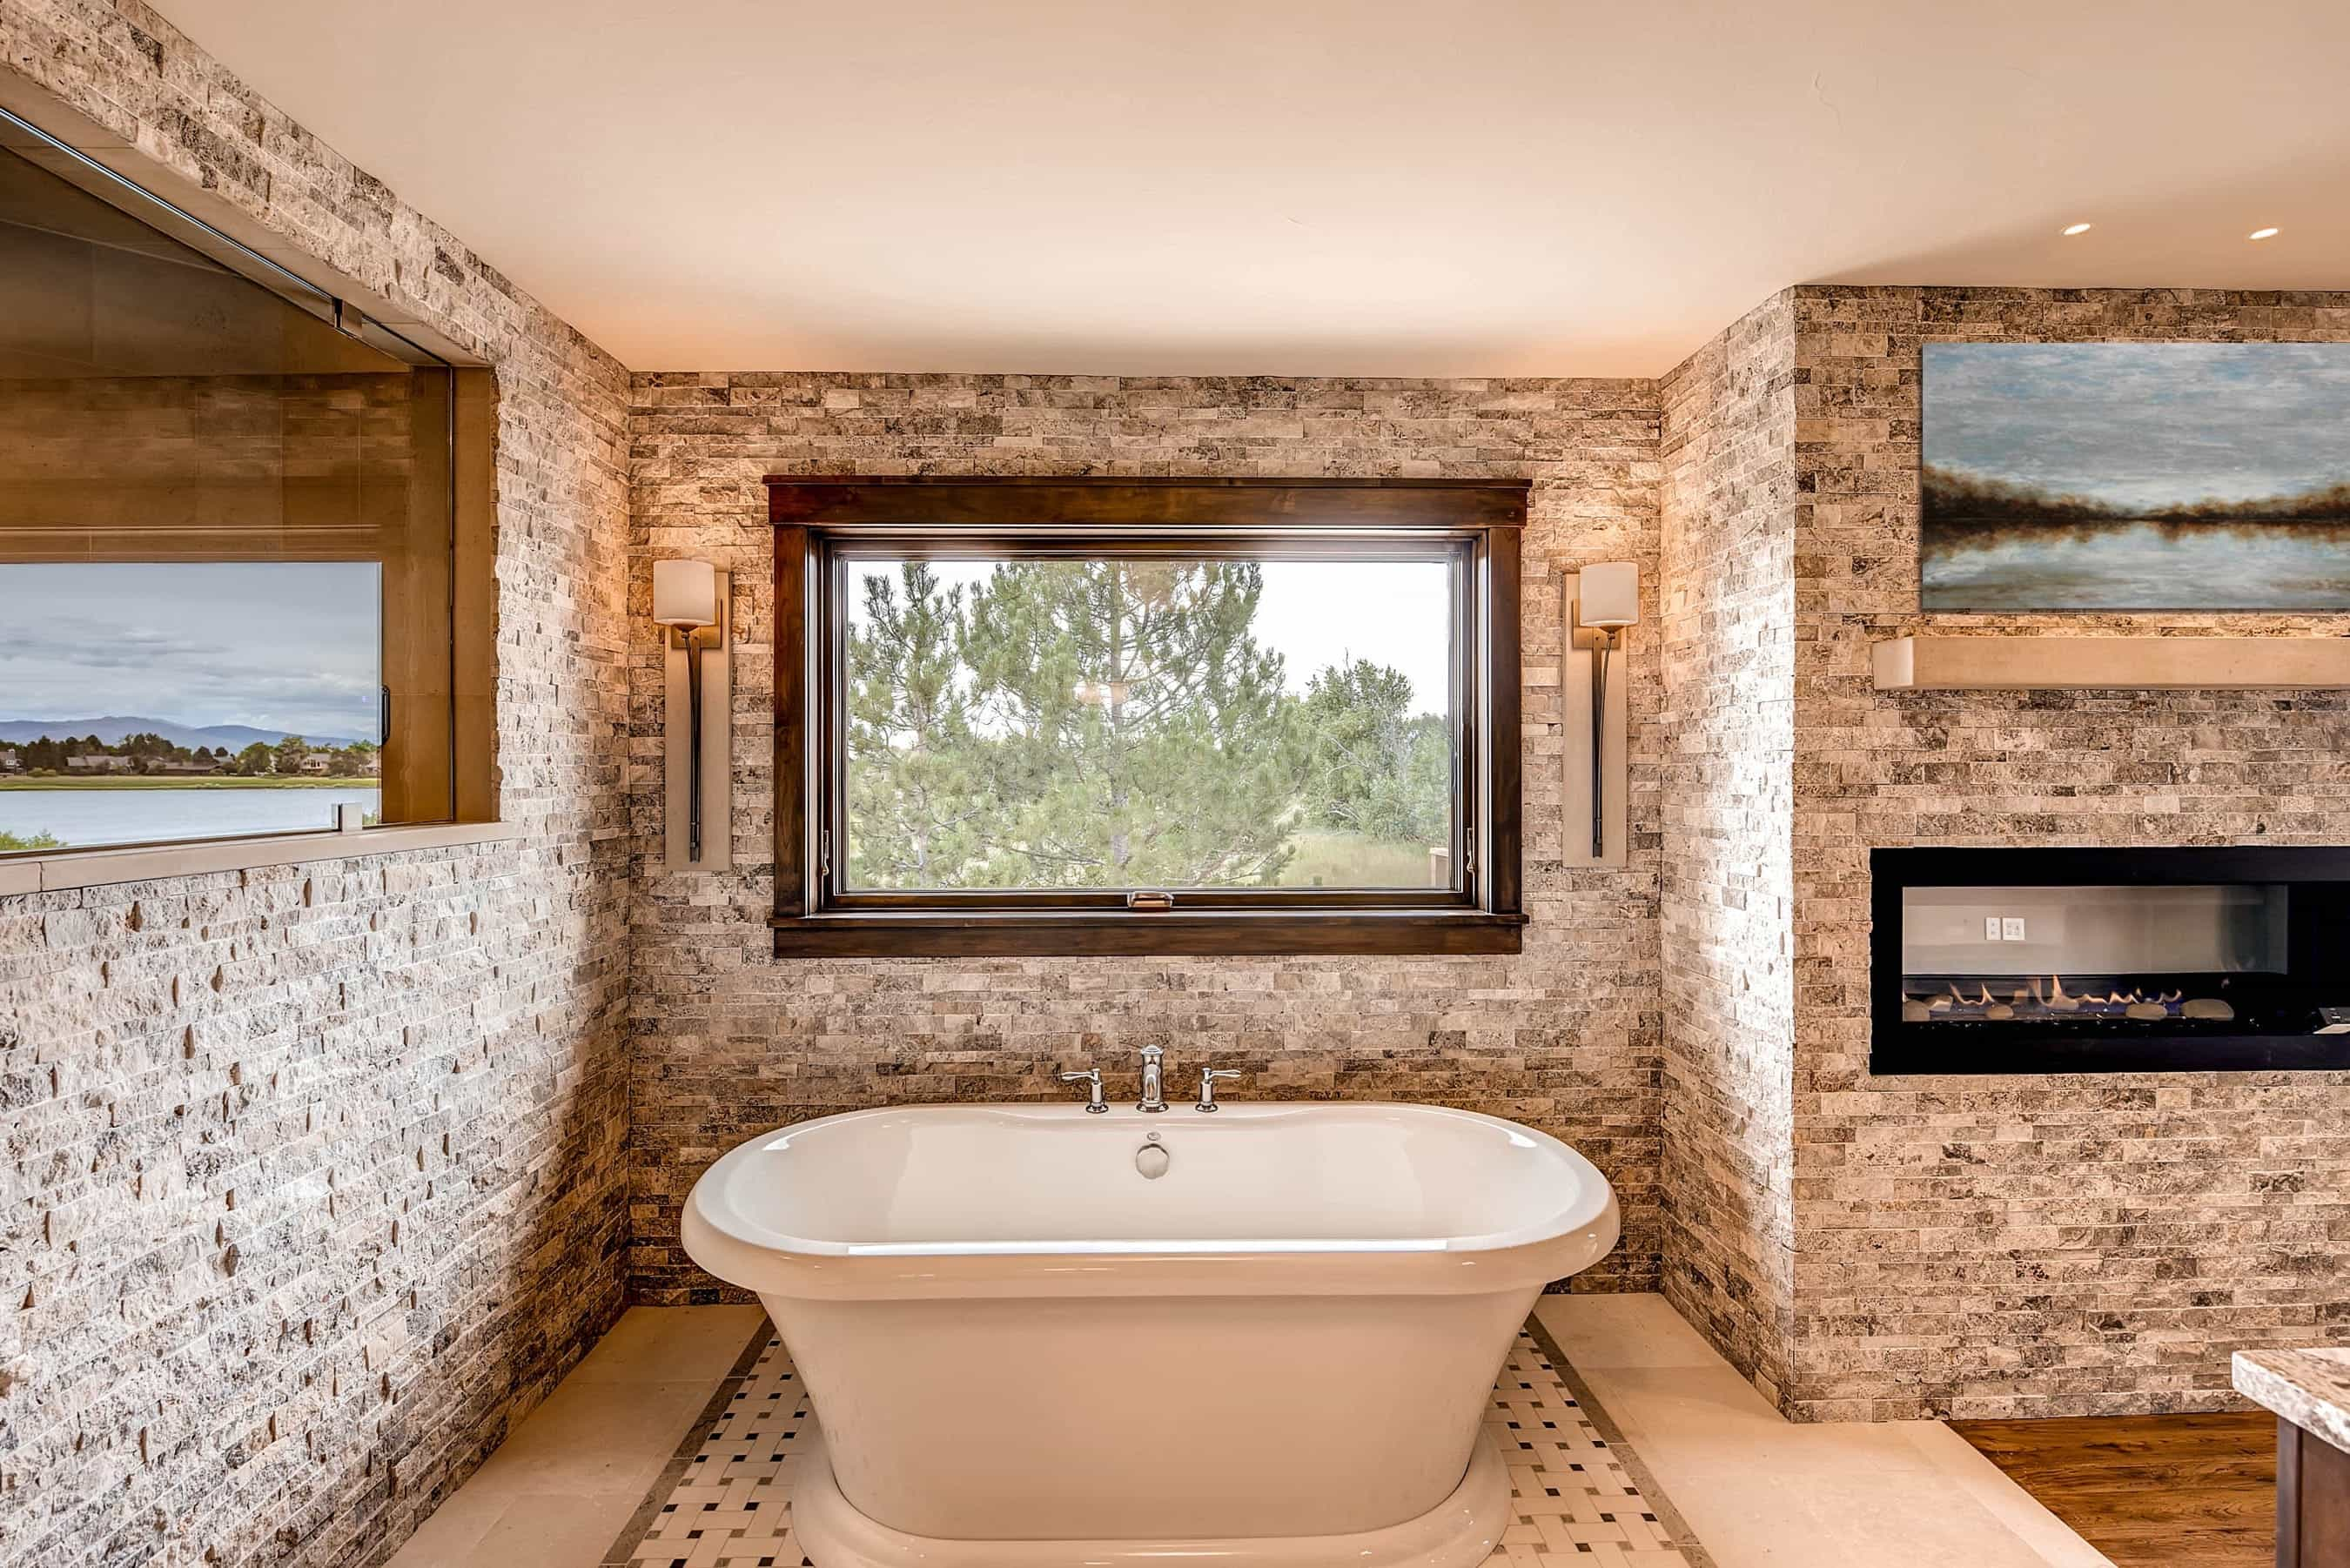 Rustic Contemporary Master Bathroom With Brick Wall And Fireplace  (Image 22 of 30)